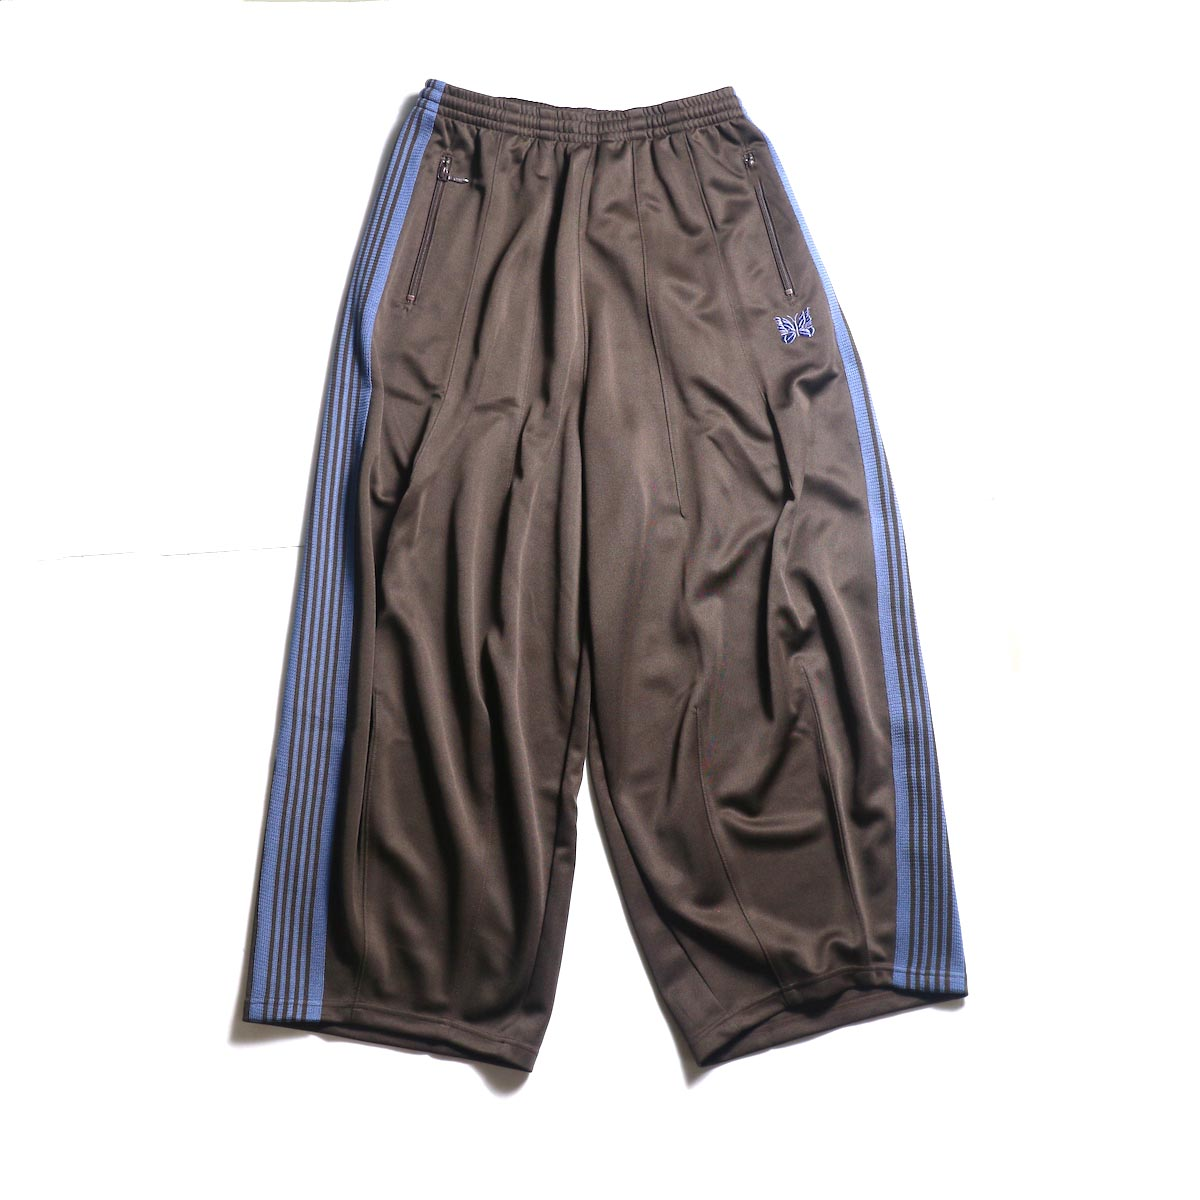 Needles / H.D. TRACK PANT - POLY SMOOTH (Brown)正面